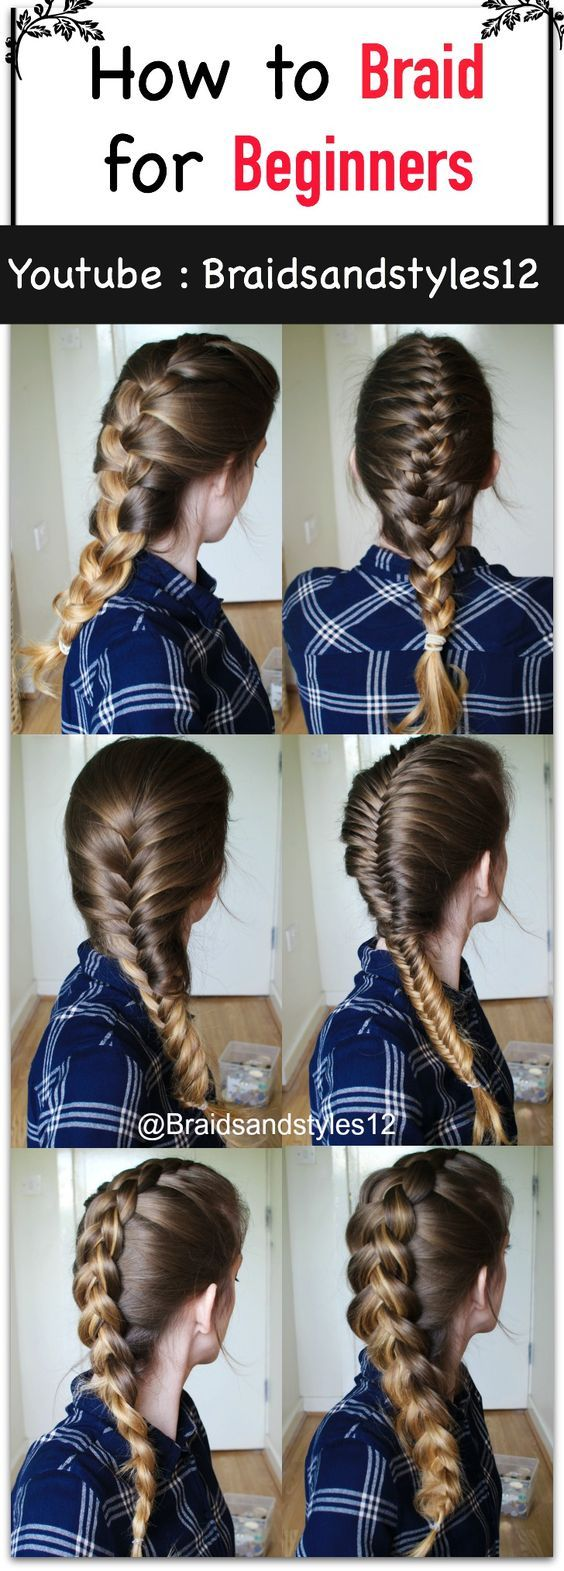 Diy hairstyle tutorials for long hair long hair hairstyles